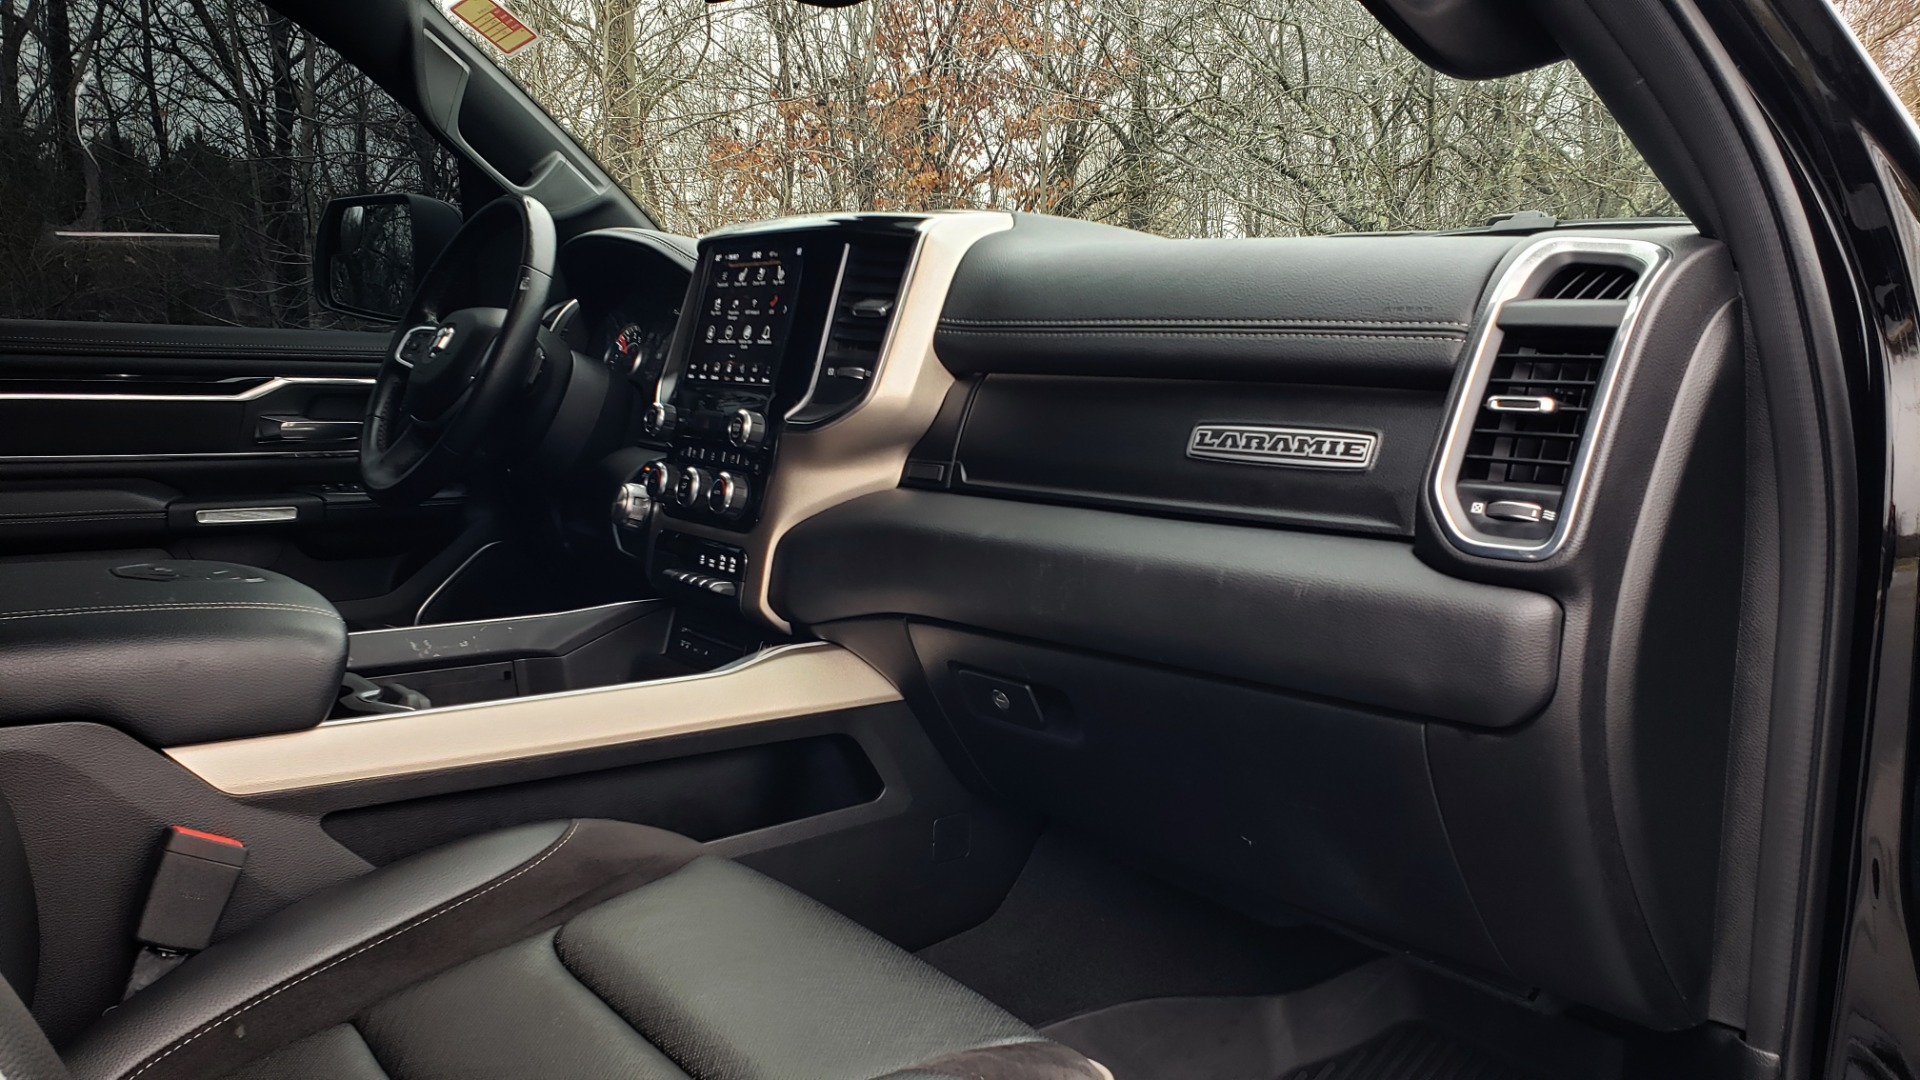 Used 2019 Ram 1500 LARAMIE SPORT / 2WD / 5.7L HEMI / NAV / BLIND SPOT / HTD STS / REARVIEW for sale Sold at Formula Imports in Charlotte NC 28227 85